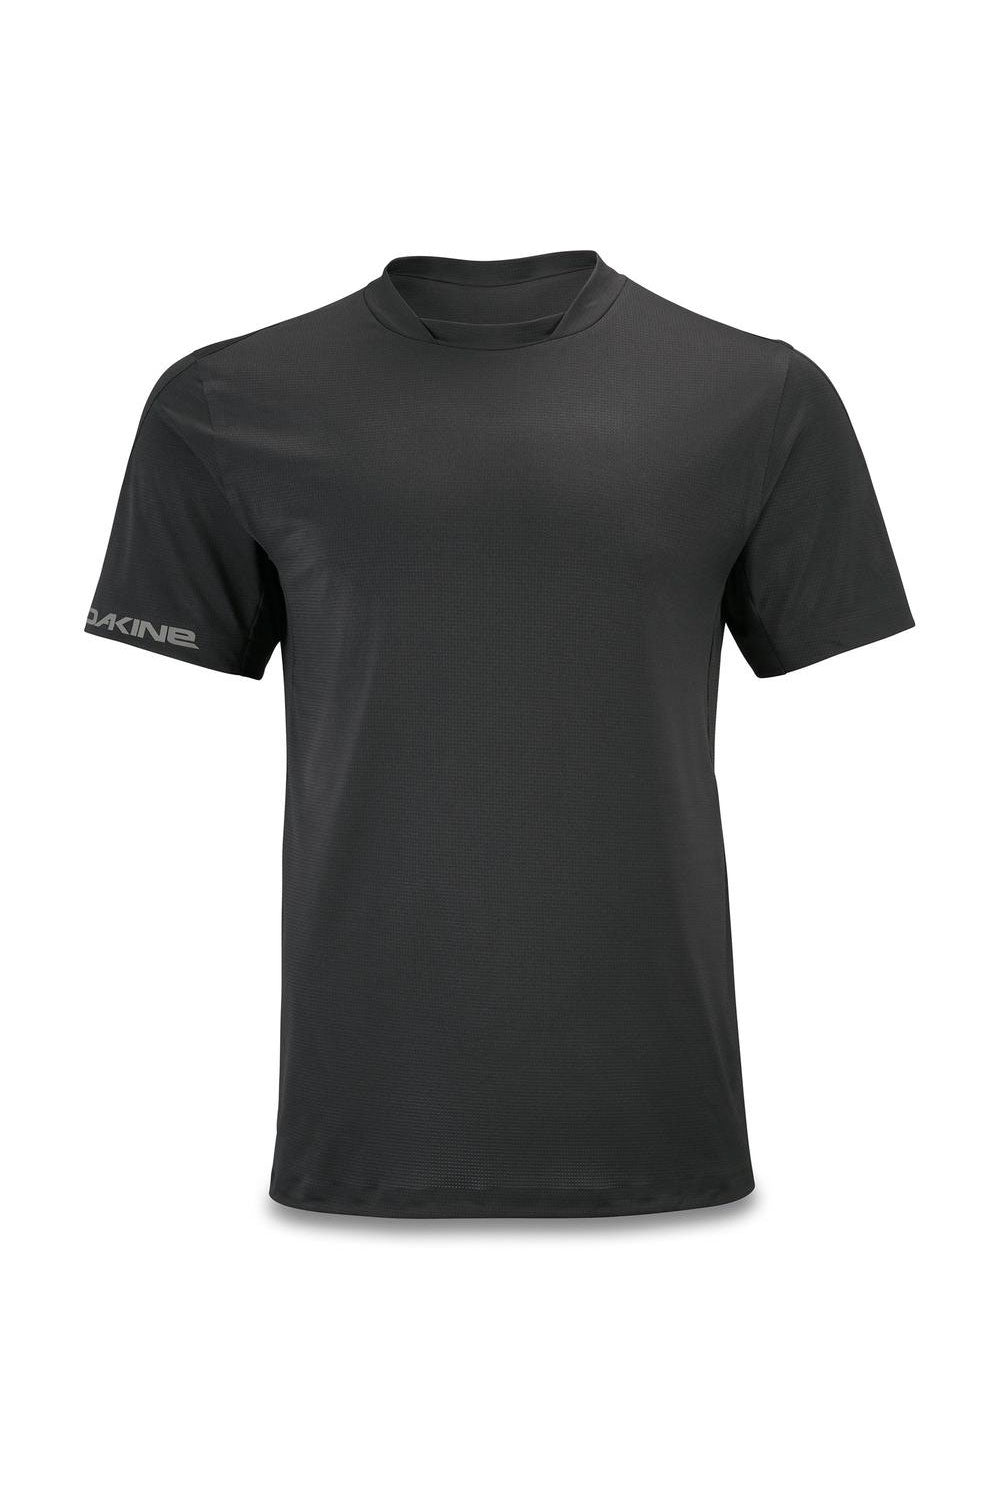 Dakine 2020 Boundary Short Sleeve S/S MTB Bike Jersey